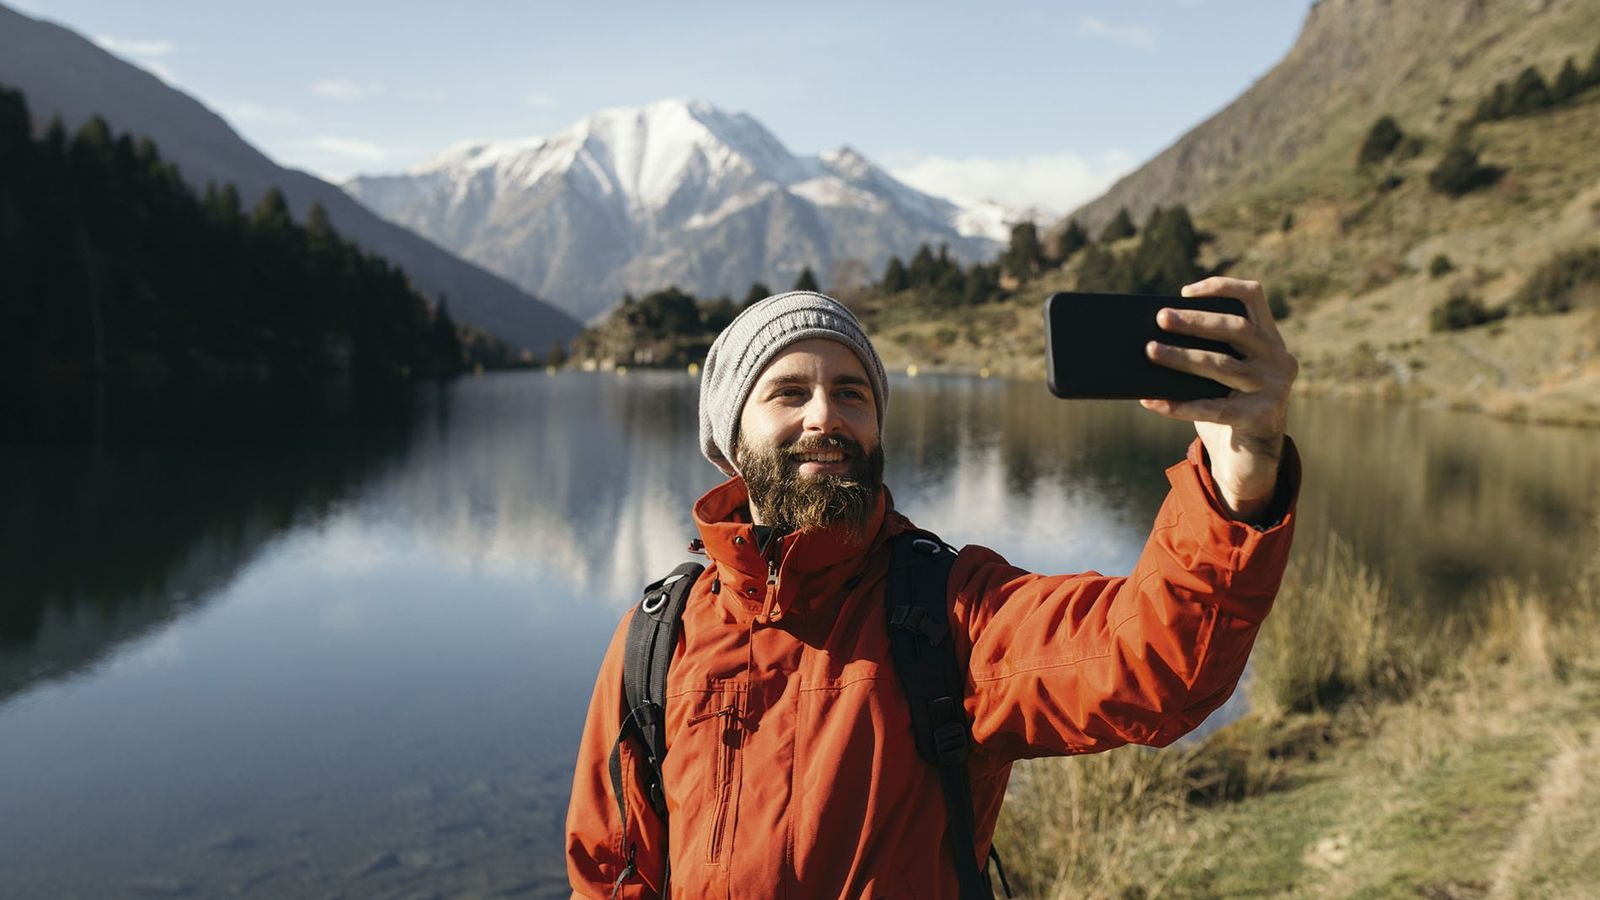 Man taking a selfie in front of a lake